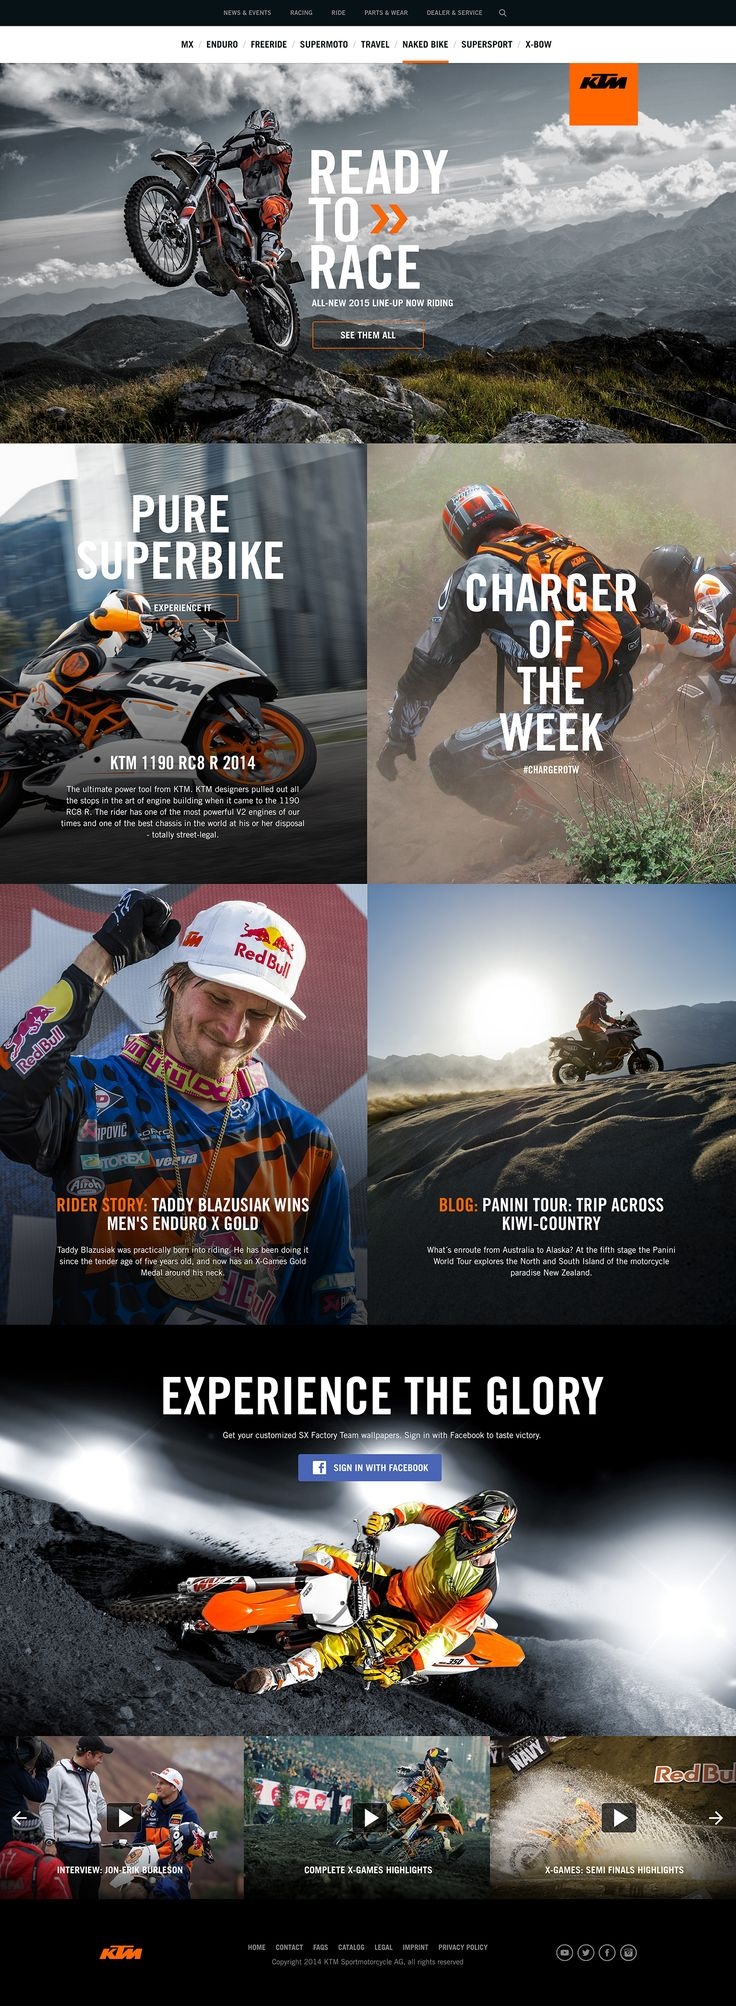 Ktm home  #madproduction --- if U like it, contact us at madproduction.it ---